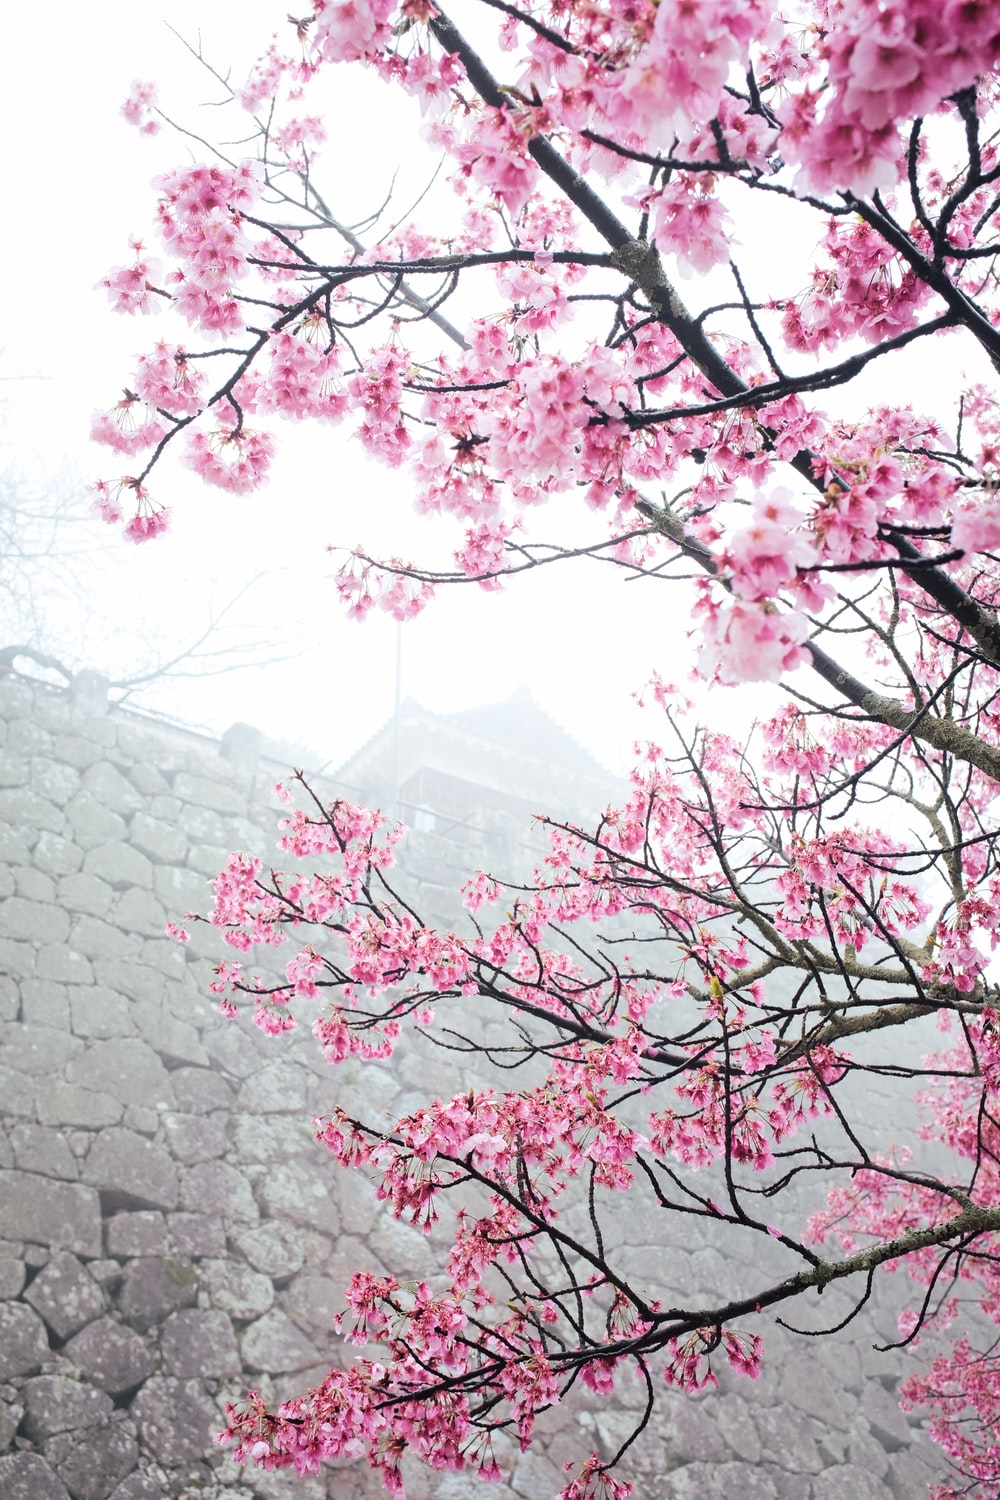 pink cherry blossom tree near gray concrete wall